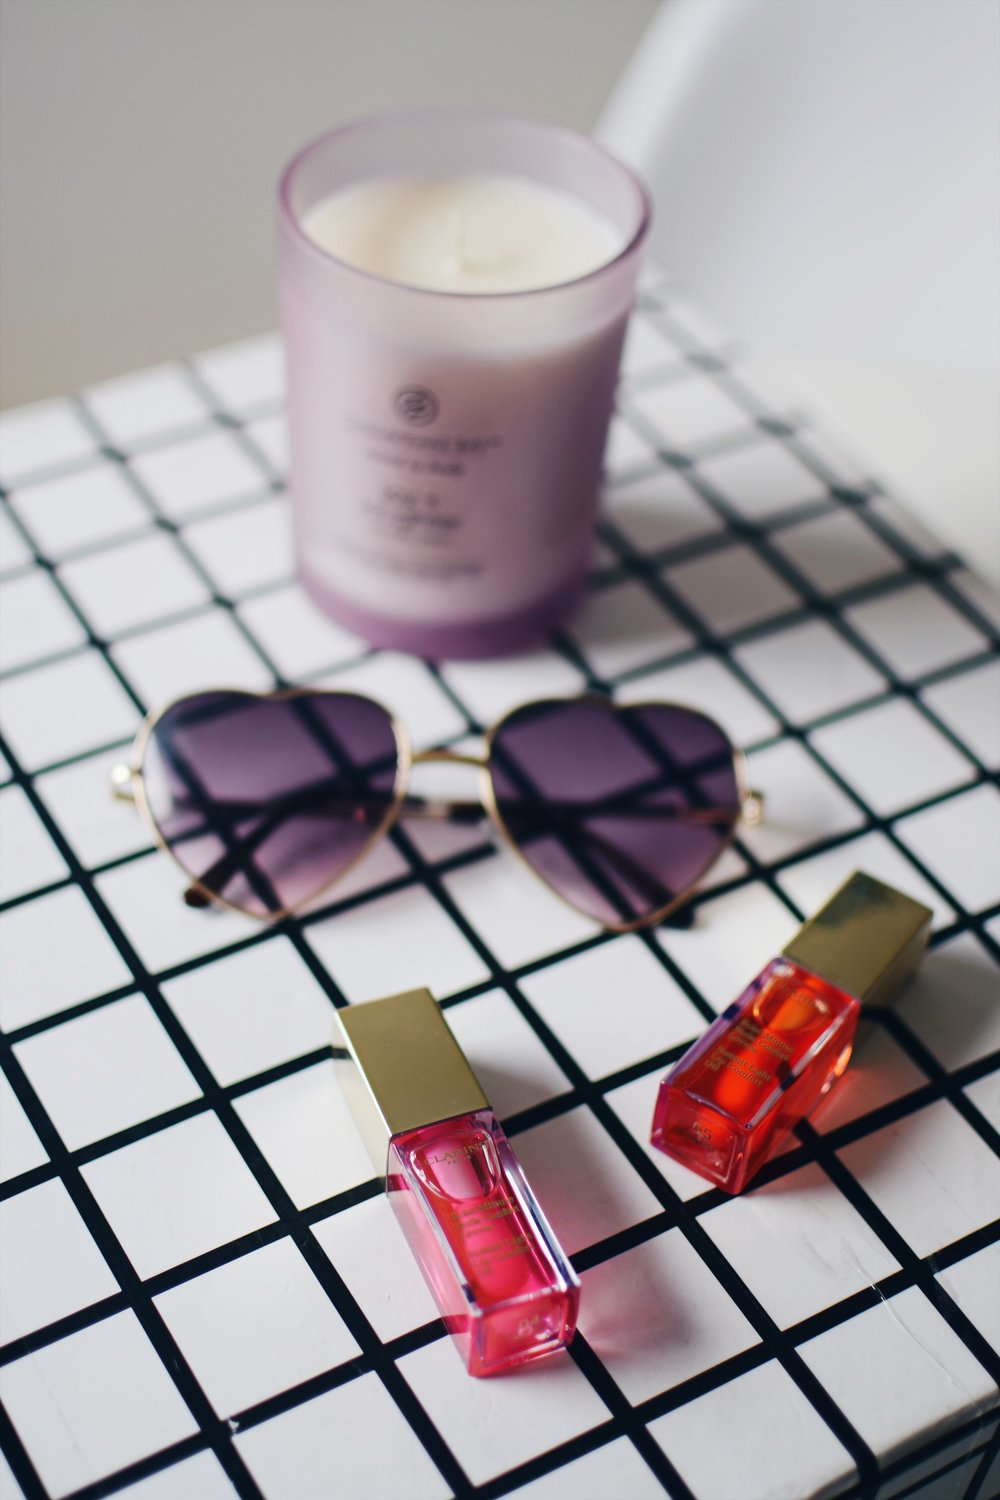 Softer Lips With Clarins Lip Oil Esther Santer Fashion Blog NYC Street Style Blogger Outfit OOTD Trendy Makeup Beauty Candle Flatlay Lipstick Color Shade Plumper Sunglasses Perfume Pretty Product Review  Shop Girl Women Orange Tangerine Pink Candy Buy.JPG